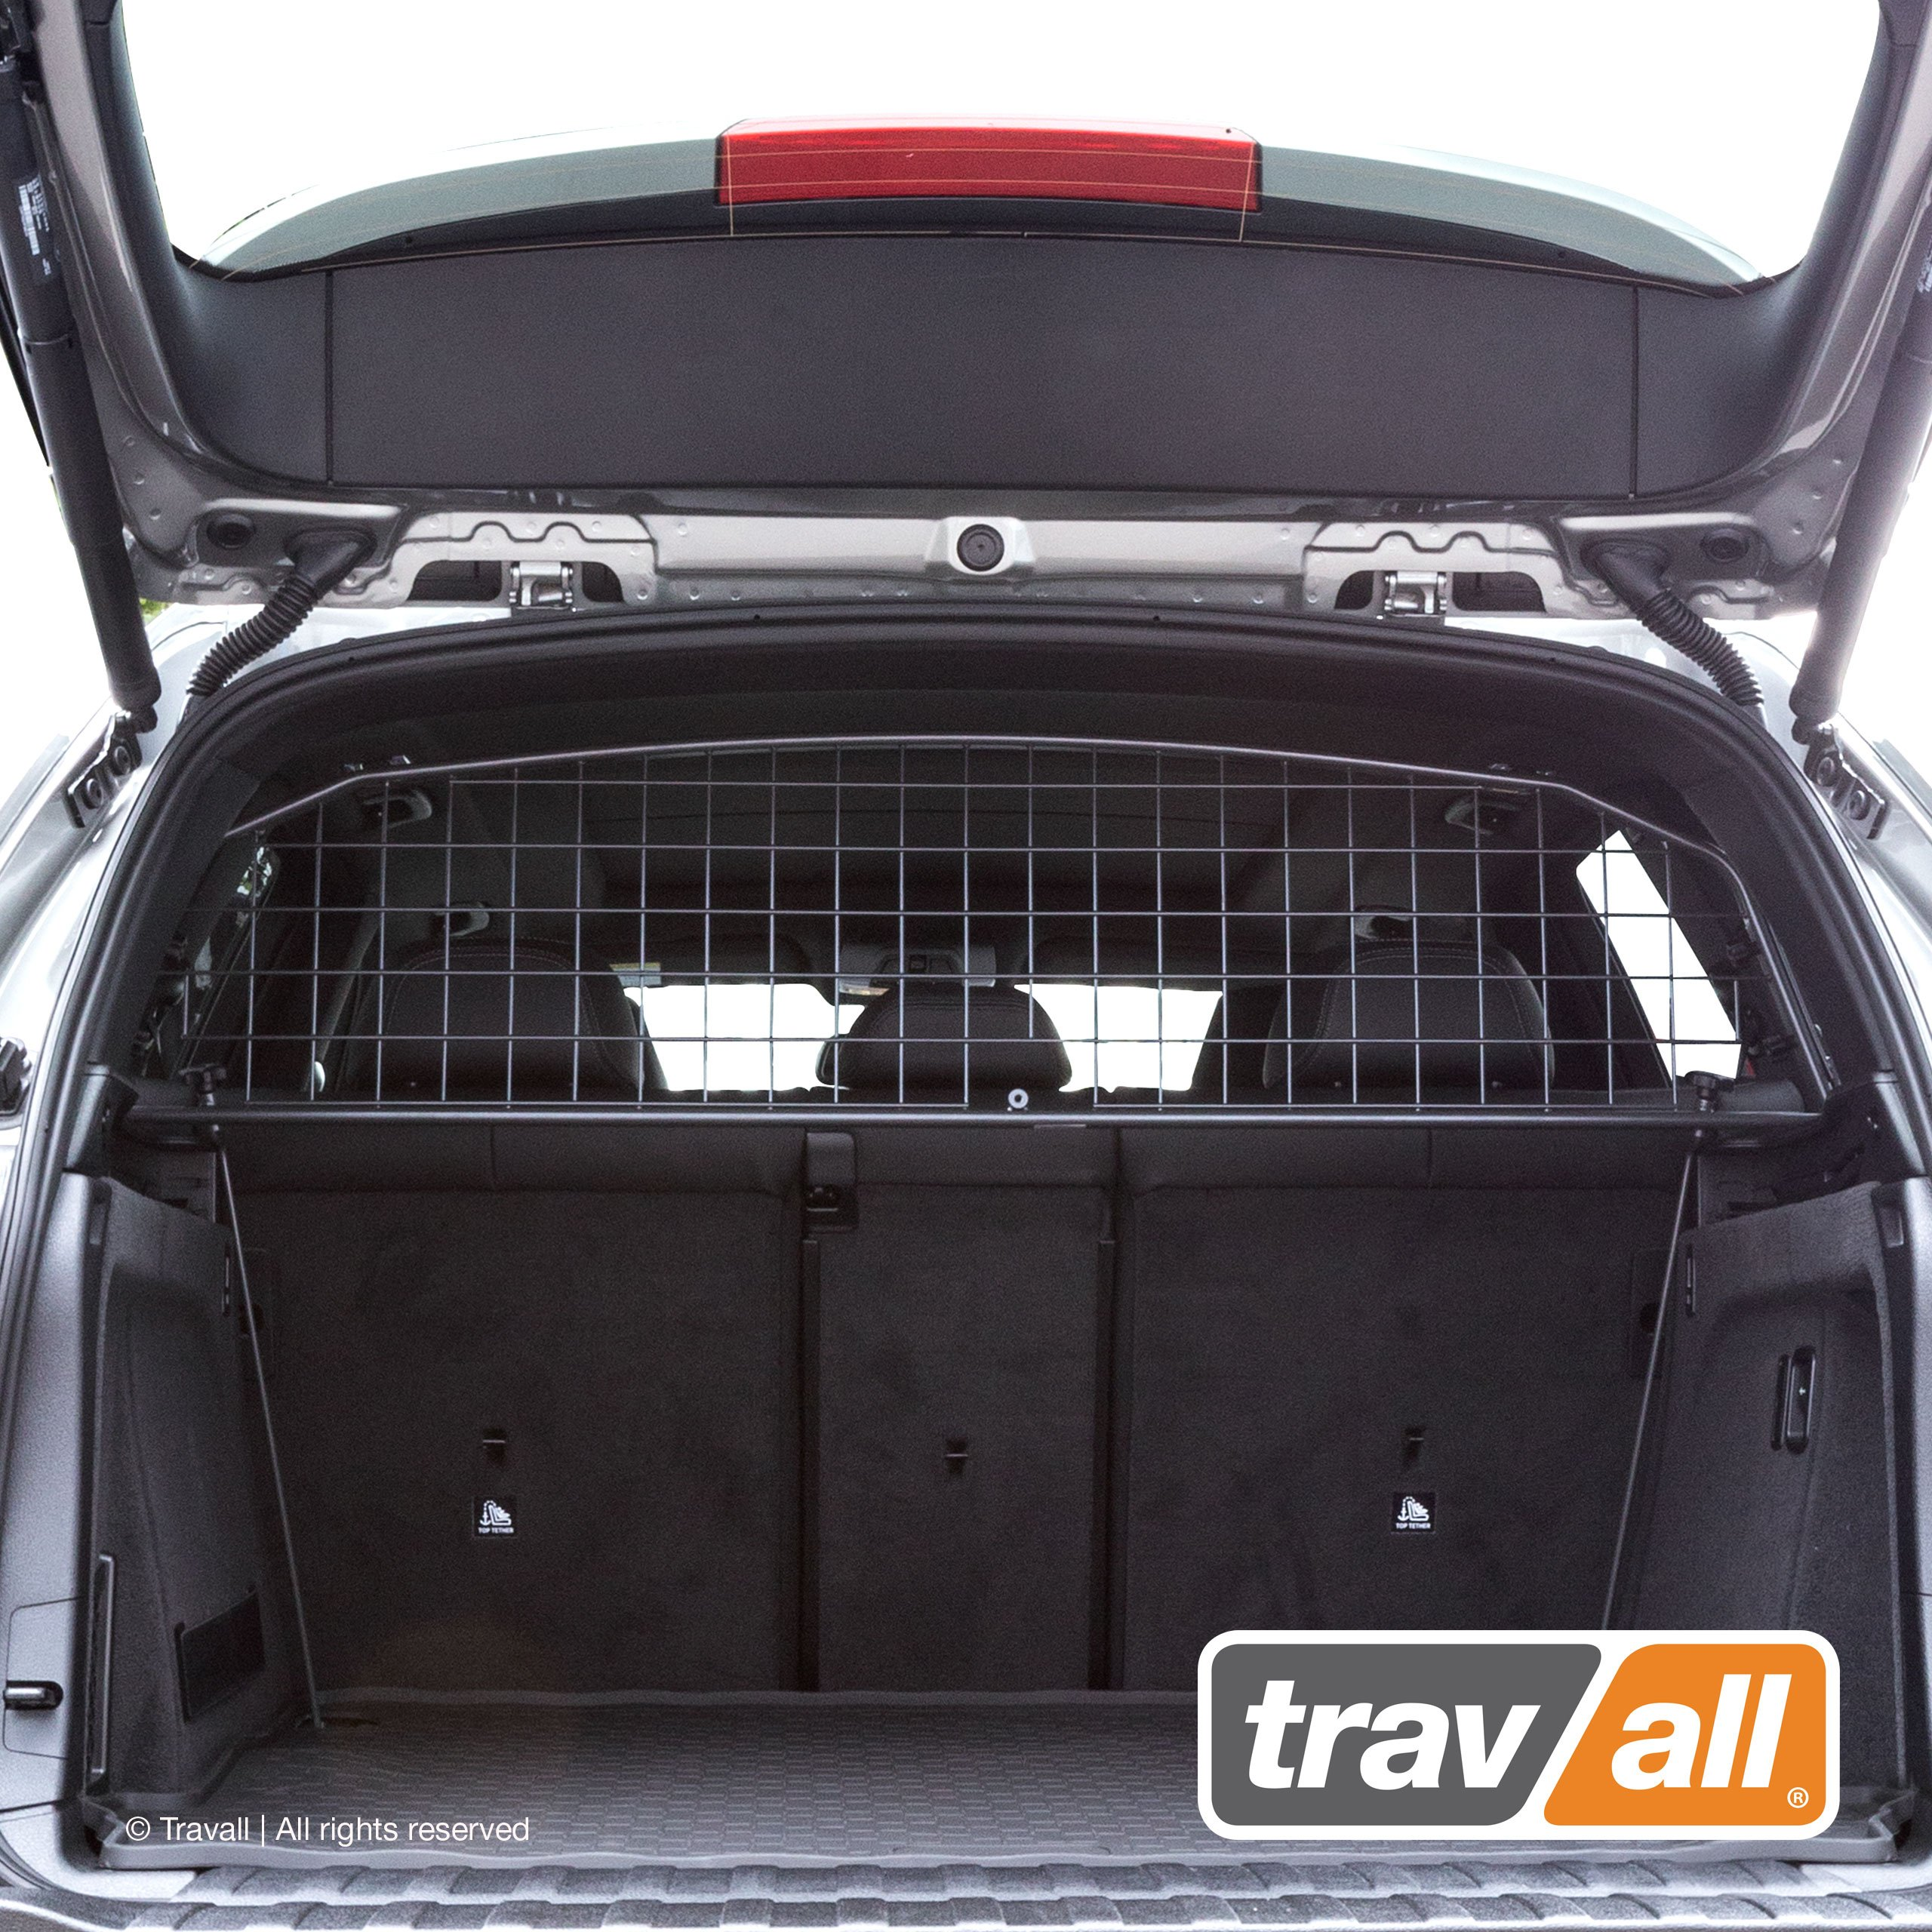 Travall Guard Compatible with BMW X5 (2006-2018) X5 M (2010-2018) TDG1166 - Rattle-Free Steel Pet Barrier by Travall